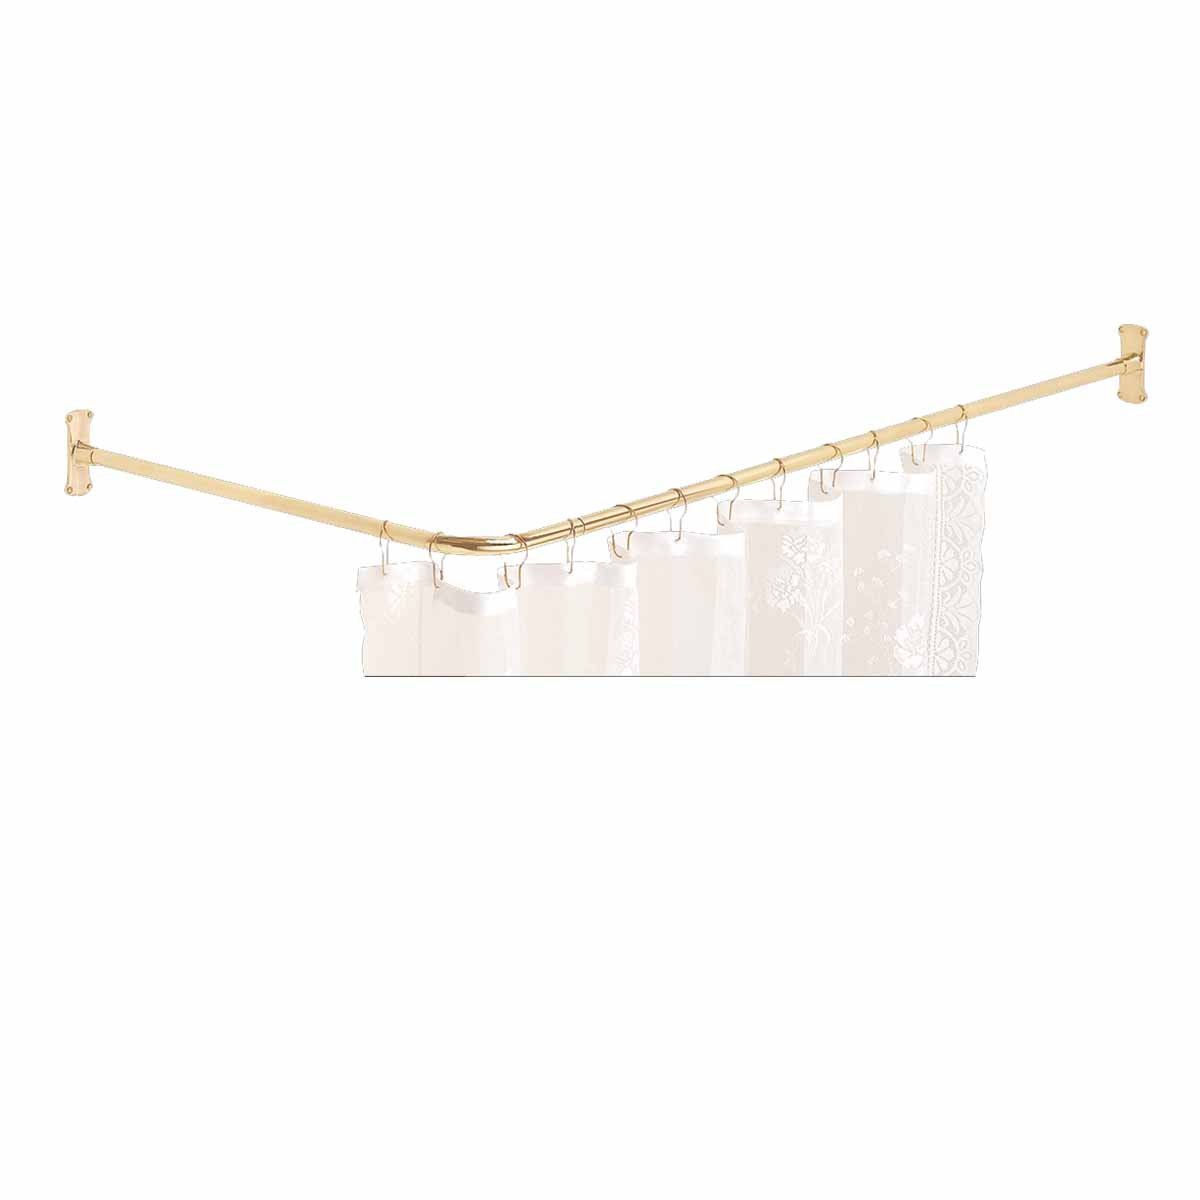 PREShower Curtain Rod Bright Solid Brass 2 Sided